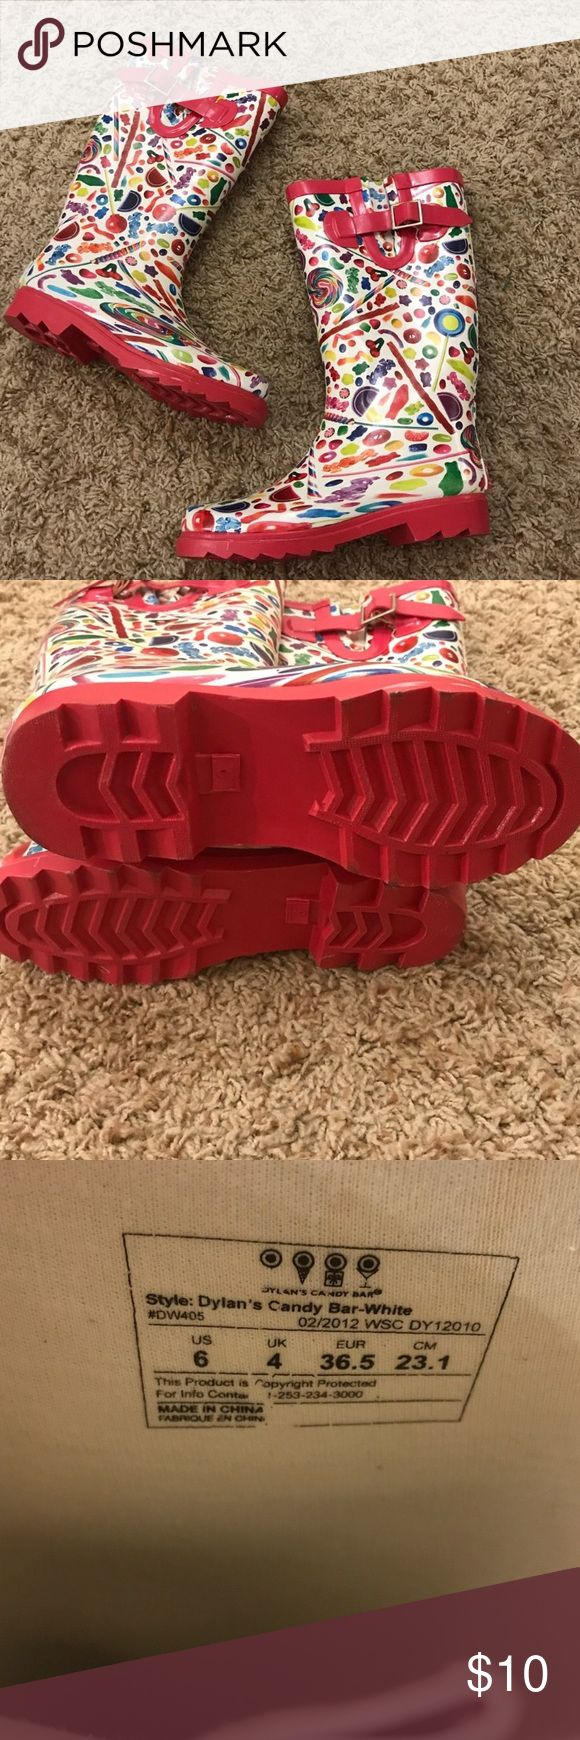 Dylan's candy bar rain boots Excellent condition! No Damage or extreme signs of wear! $5 ITEMS MUST Be BUNDLED!!   I will NOT SHIP IF NOT BUNDLED!! ❤️😊🍍 dylans candy bat Shoes Winter & Rain Boots